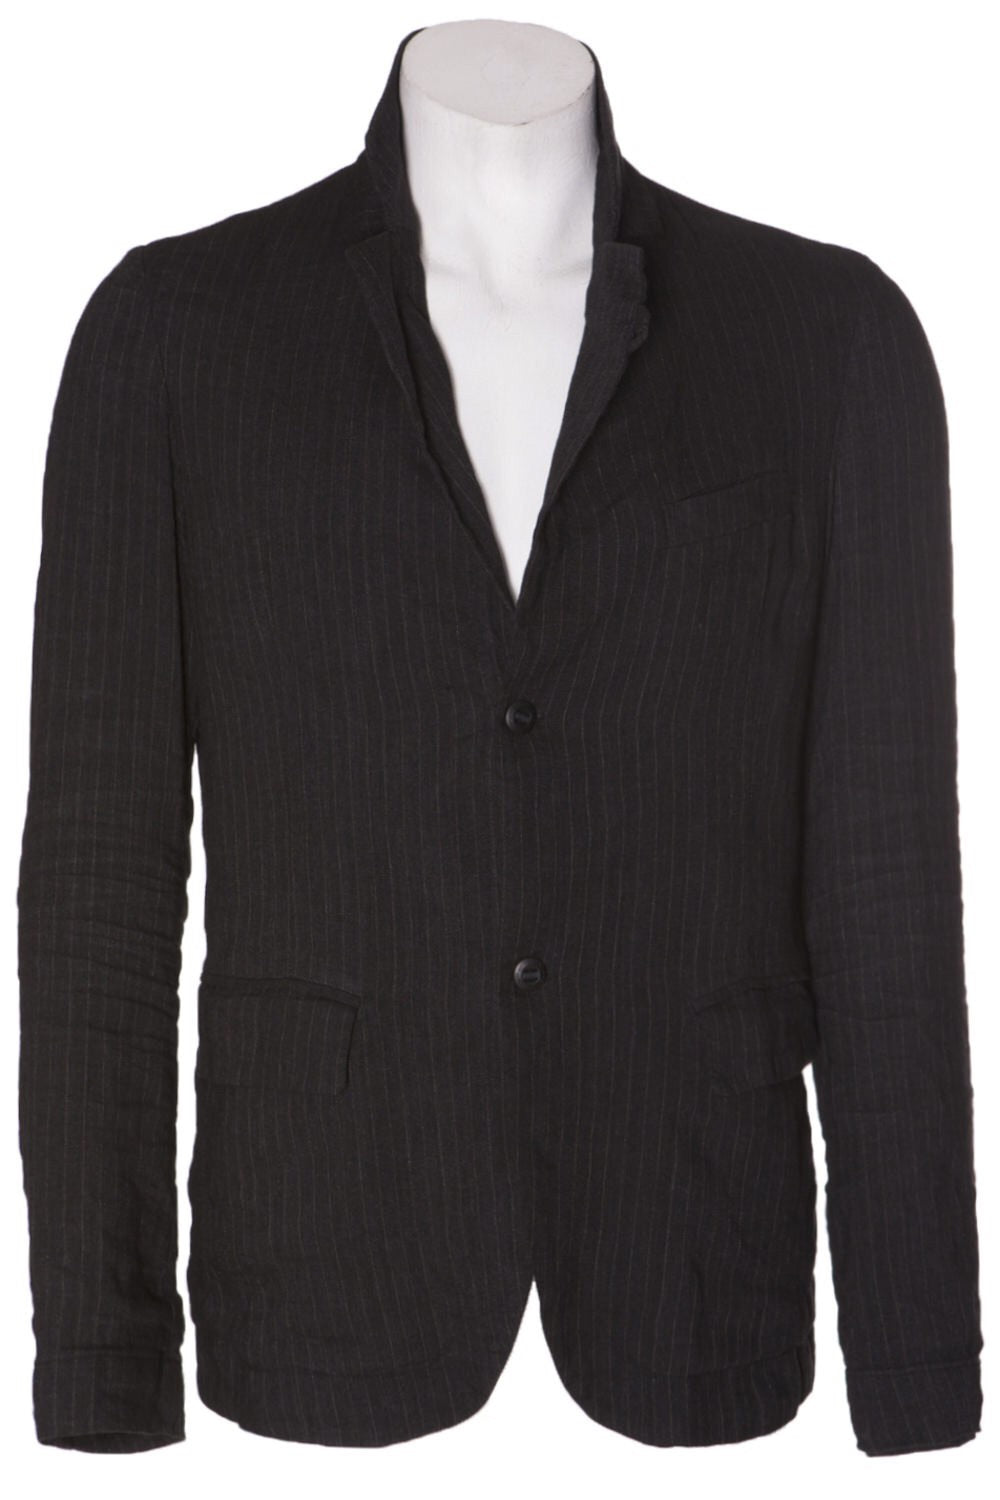 Hannes Roether Linen Pinstripe Jacket